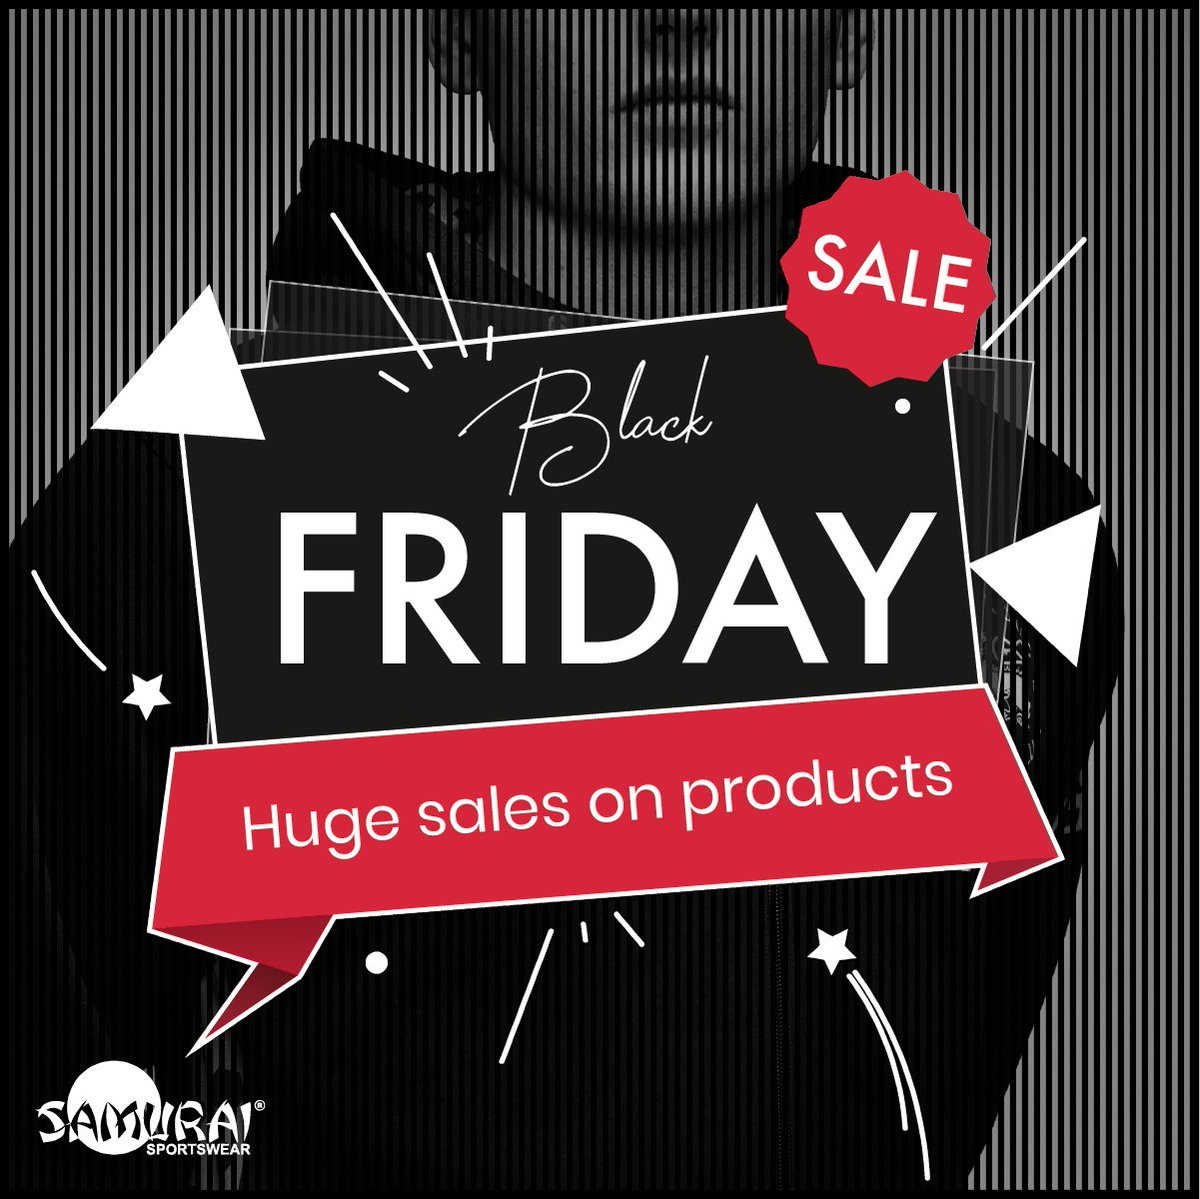 test Twitter Media - Our Black Friday sale has started. Get in quick before it's all gone! https://t.co/0YYlqolZ2M https://t.co/rHQz4MbO0J